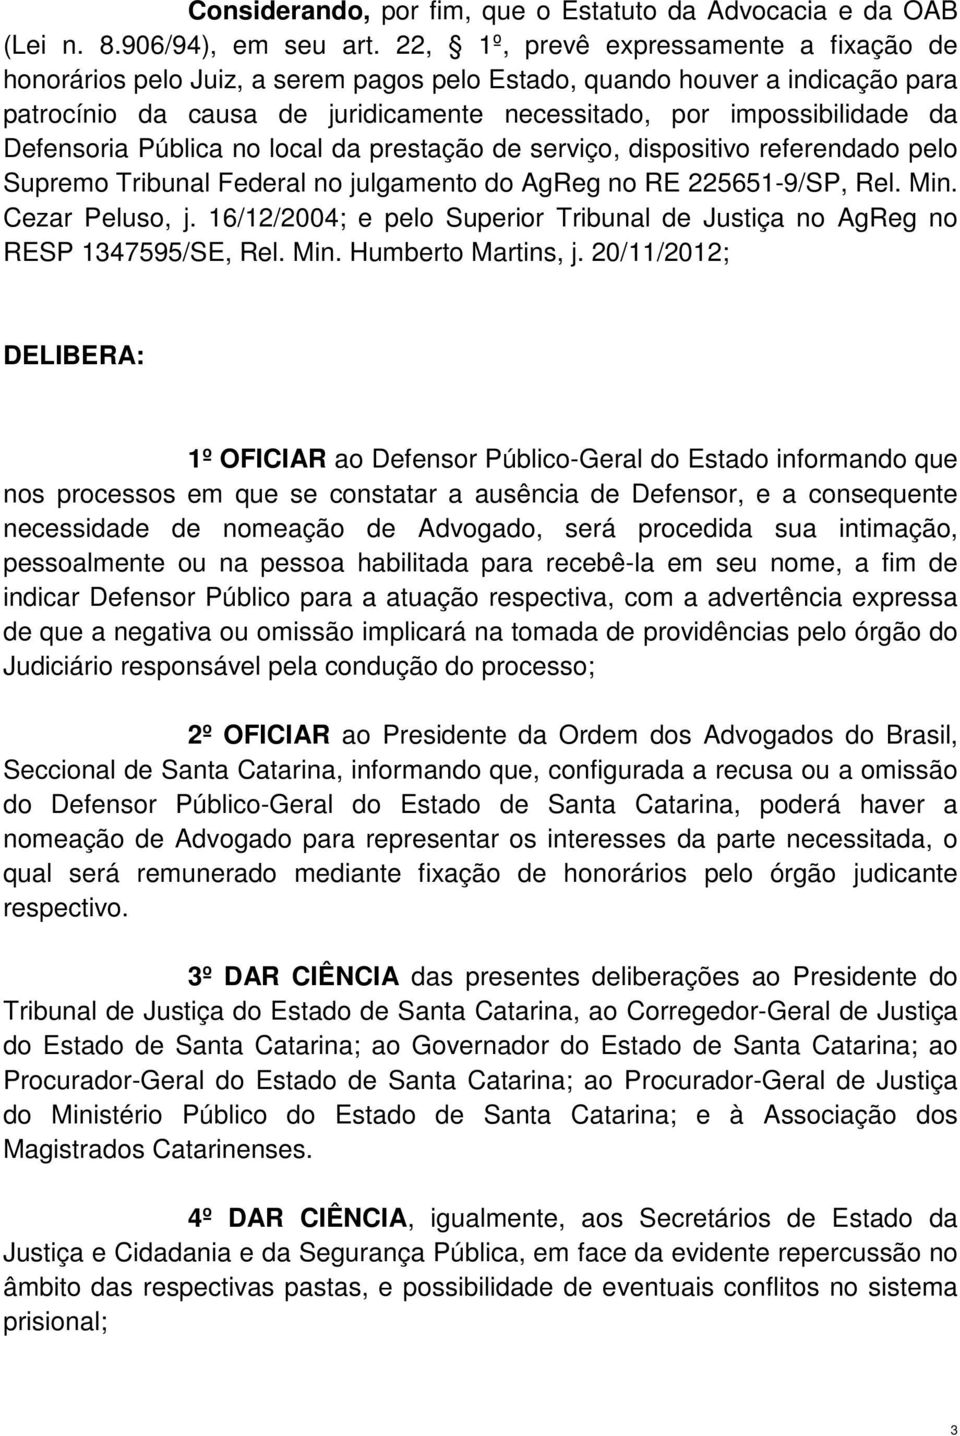 Defensoria Pública no local da prestação de serviço, dispositivo referendado pelo Supremo Tribunal Federal no julgamento do AgReg no RE 225651-9/SP, Rel. Min. Cezar Peluso, j.